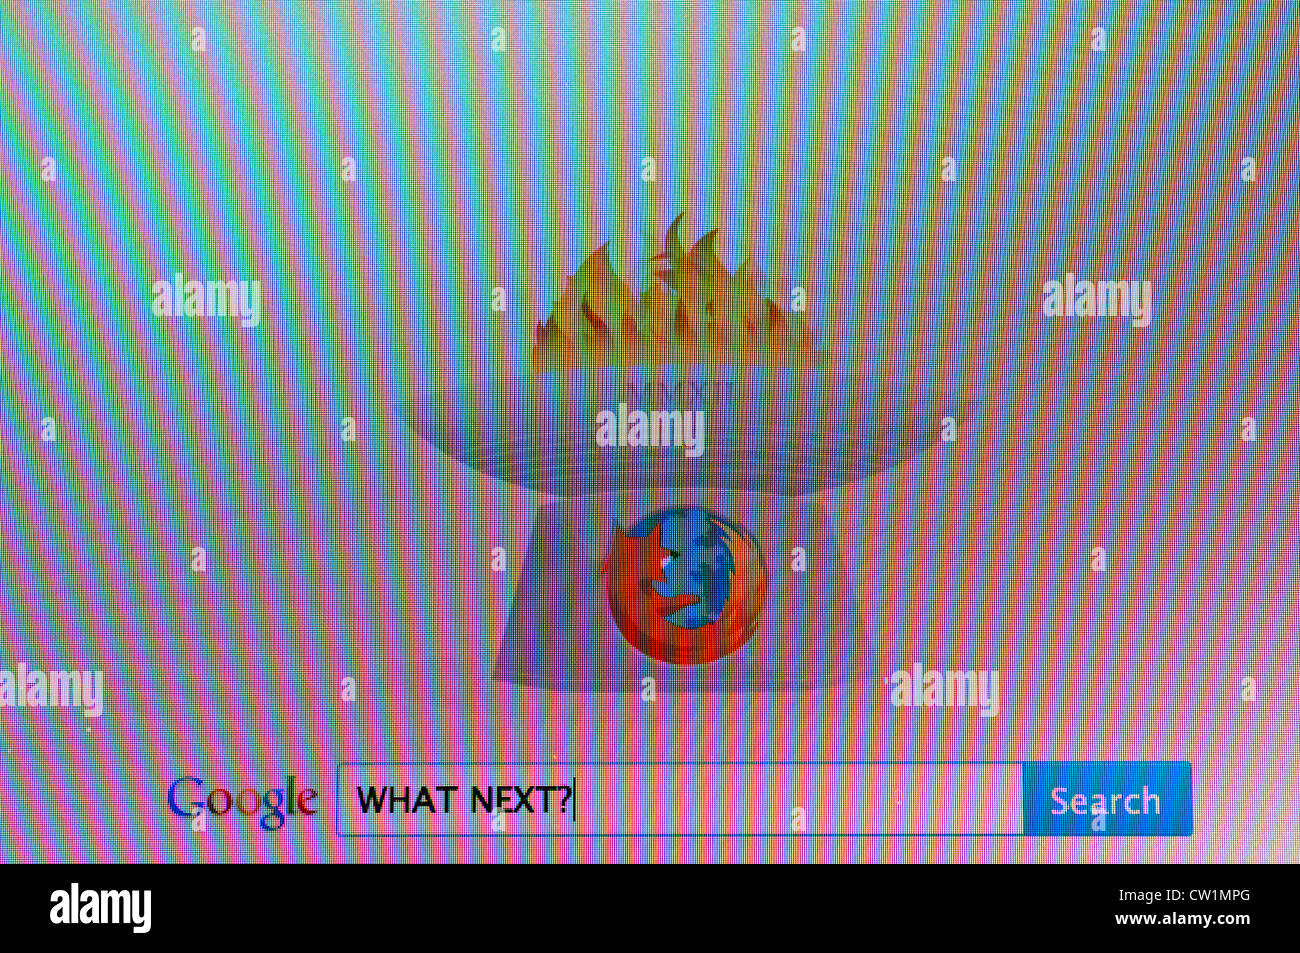 Computer screen with google search for 'What next'? - Stock Image